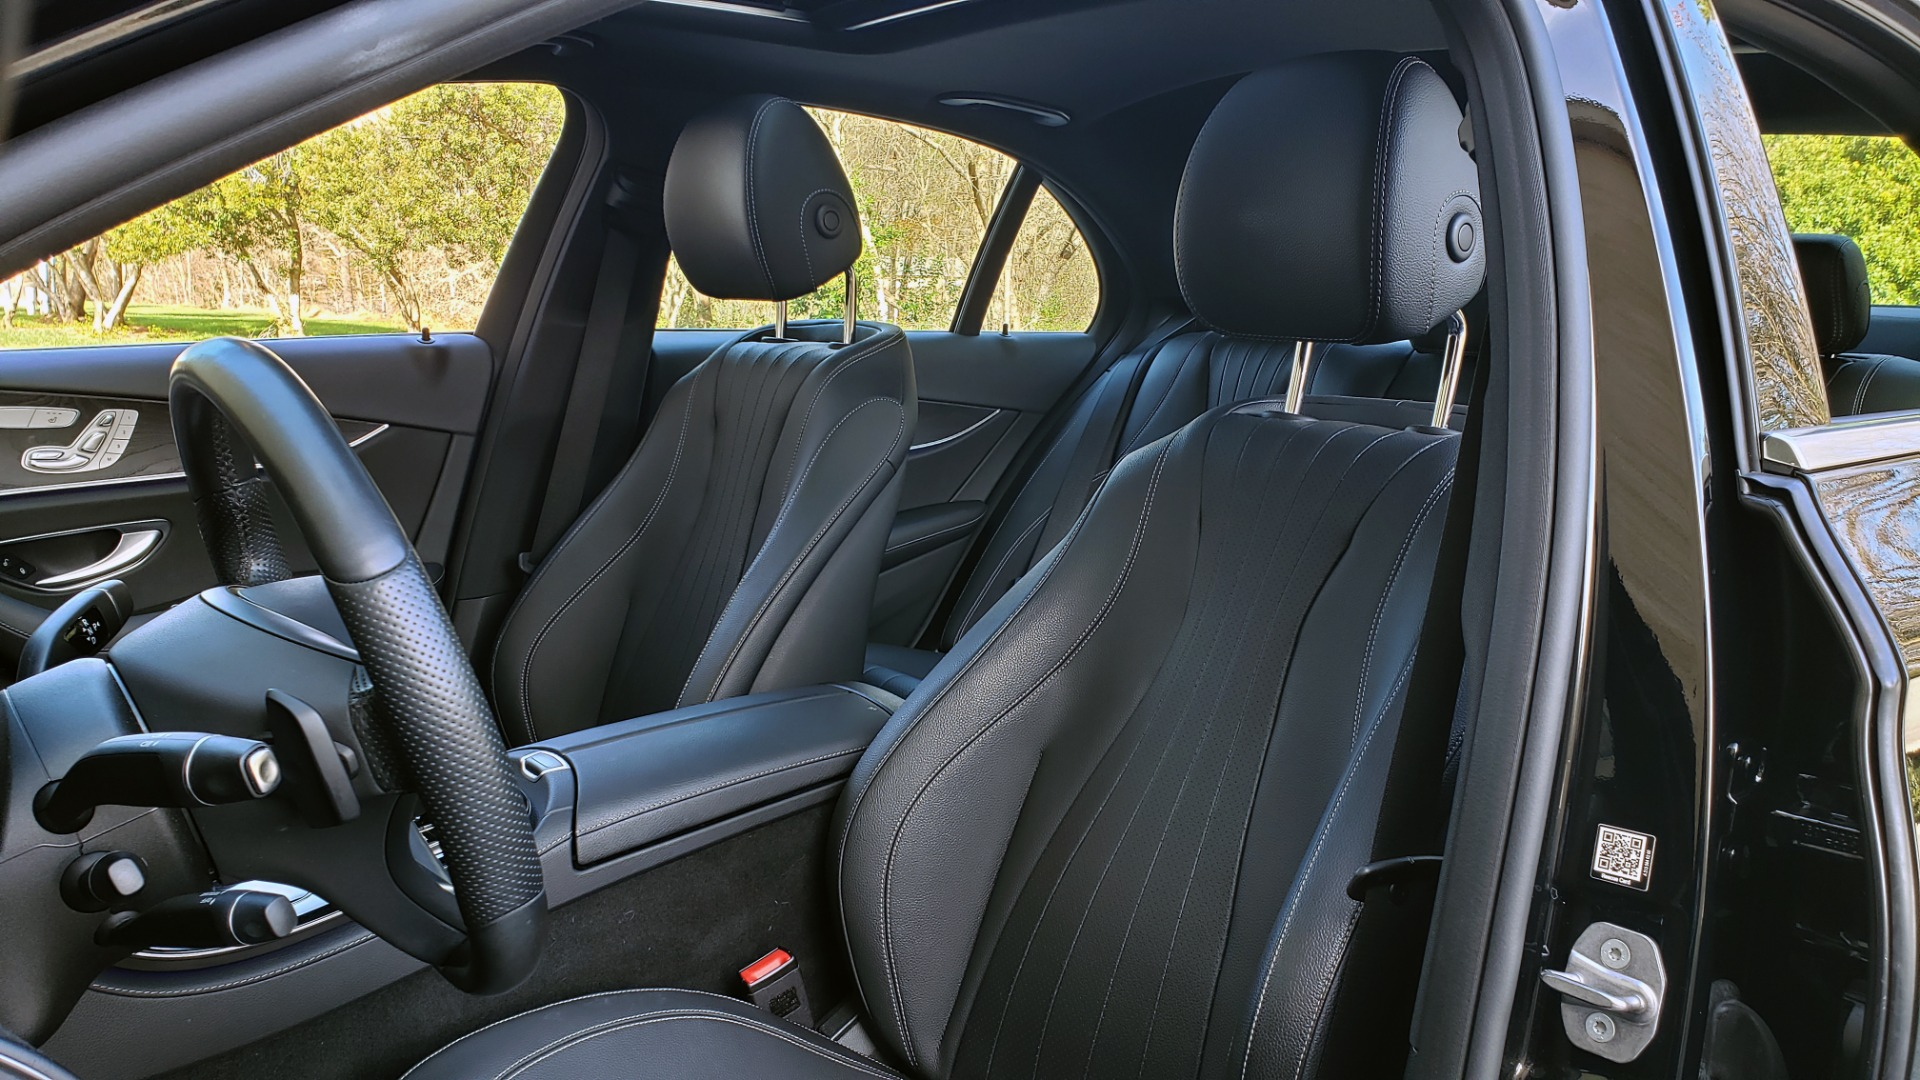 Used 2017 Mercedes-Benz E-CLASS E 300 PREMIUM / NAV / SUNROOF / BURMESTER / HTD STS / REARVIEW for sale $29,995 at Formula Imports in Charlotte NC 28227 38